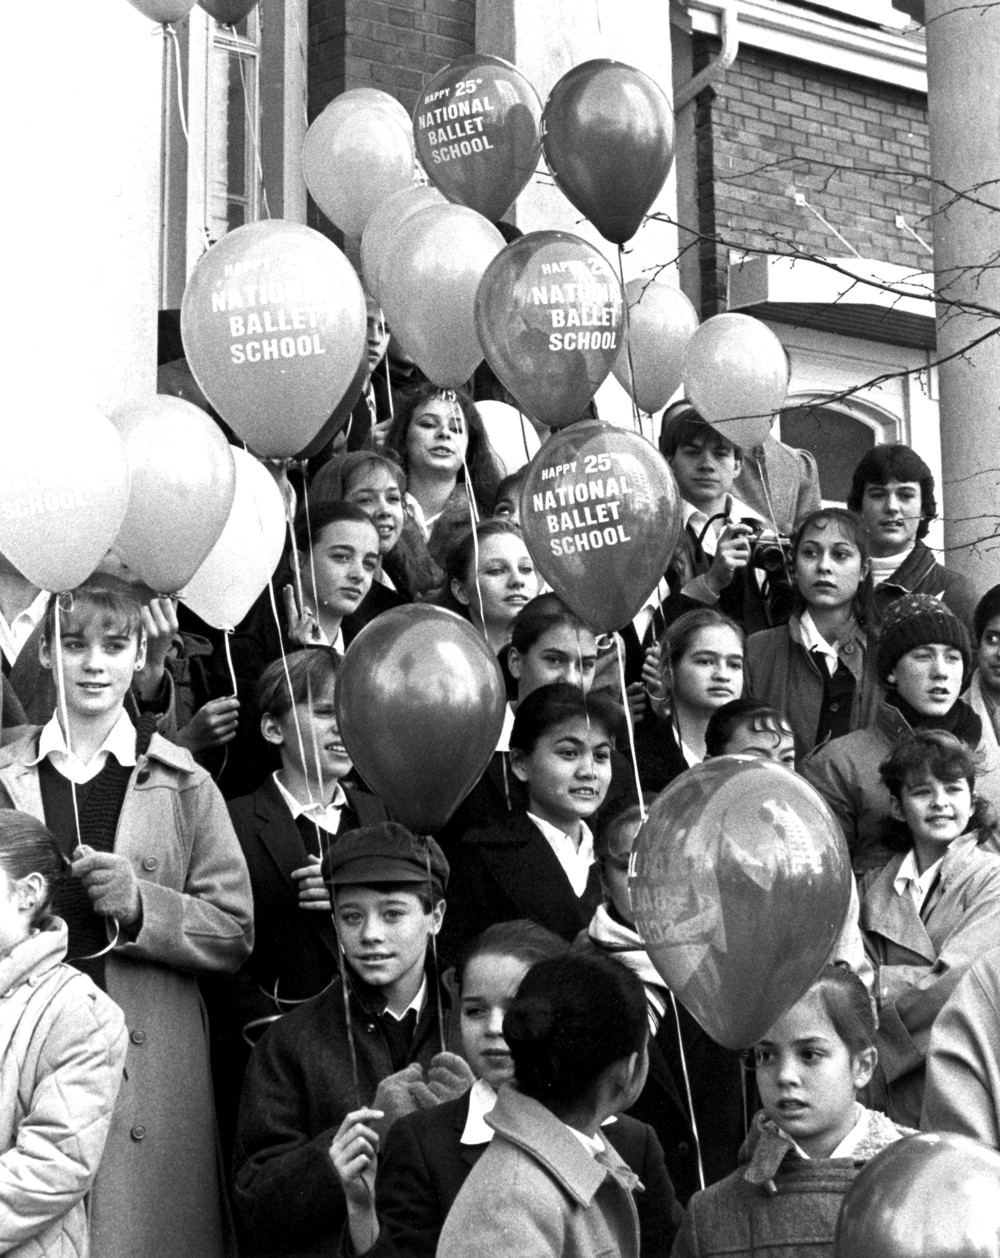 NBS students on the steps of the School celebrate NBS' 25th anniversary in November 1984.